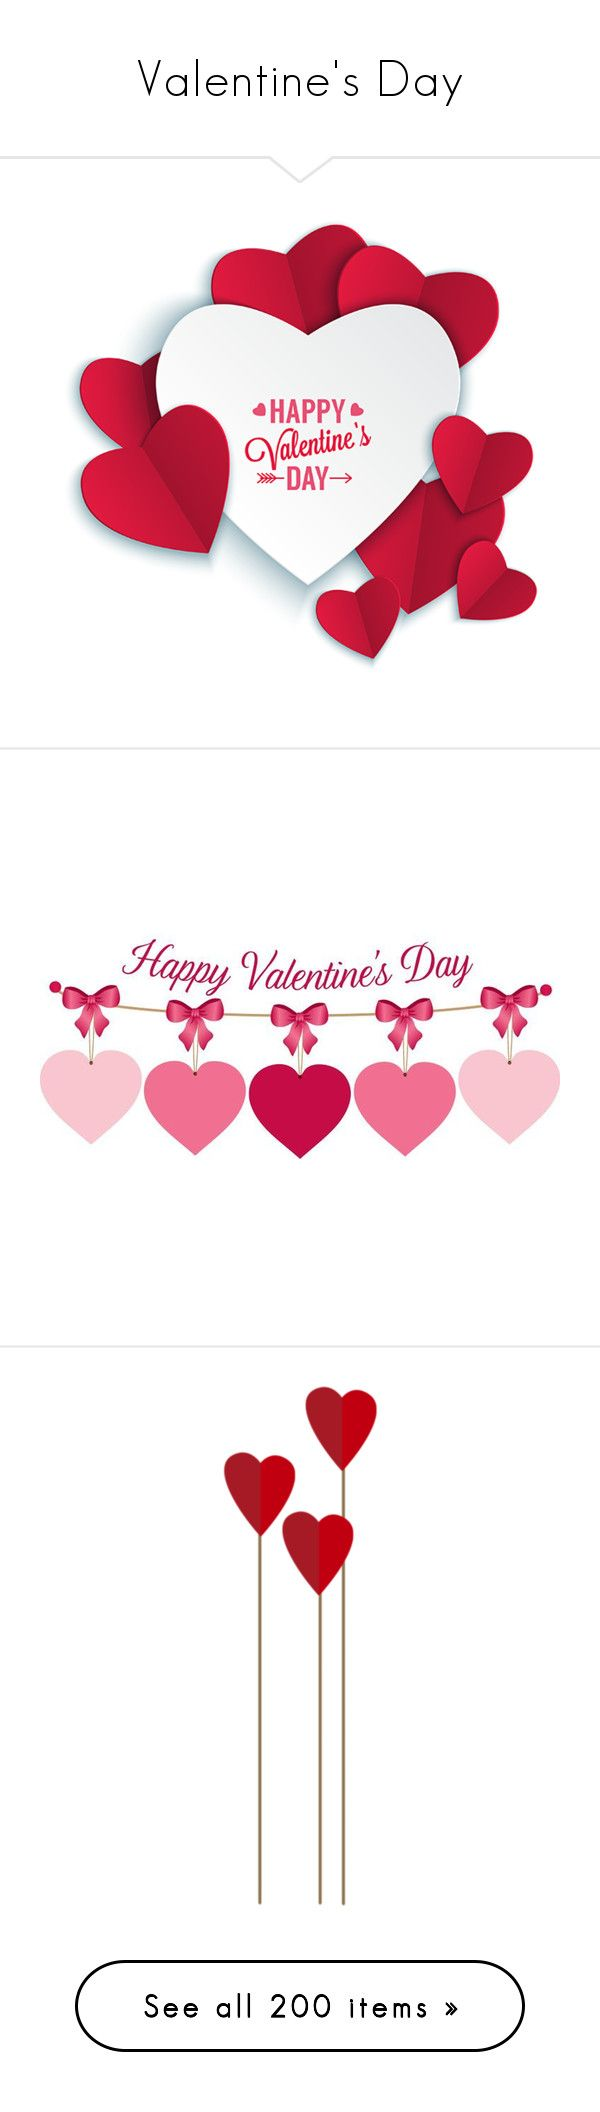 valentines day by mommastephud liked on polyvore featuring valentine phrase quotes